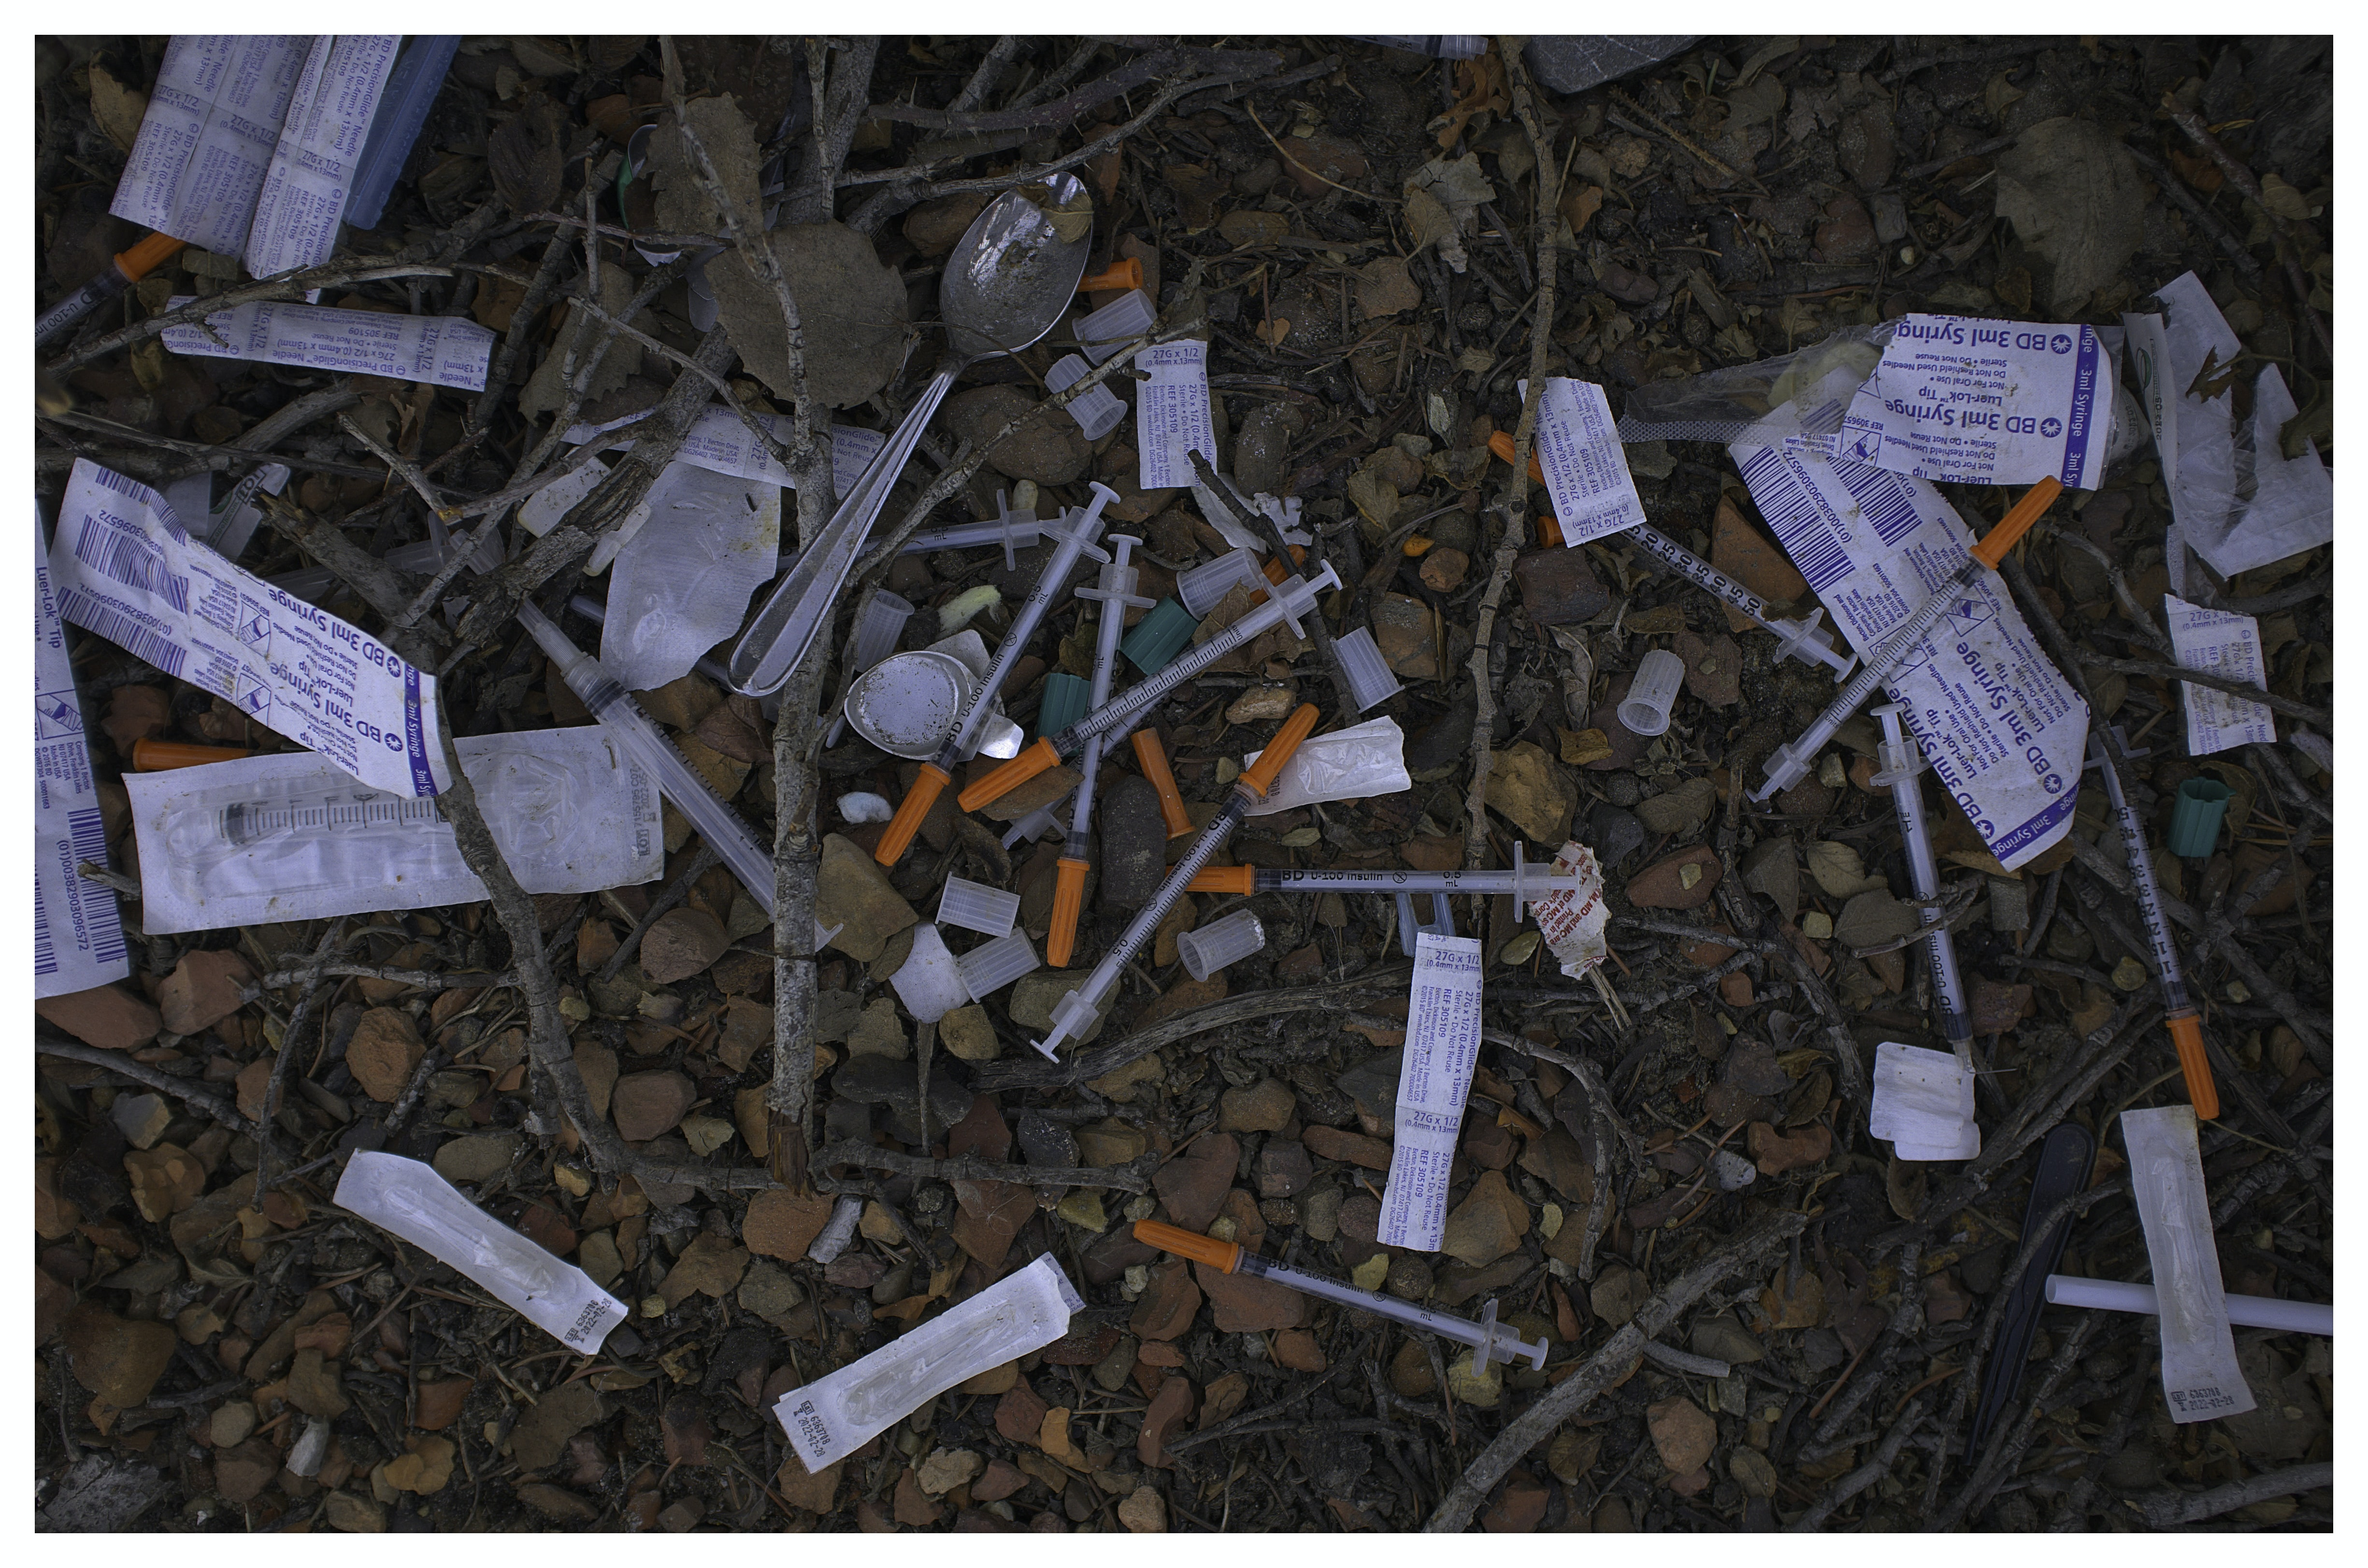 syringes on ground